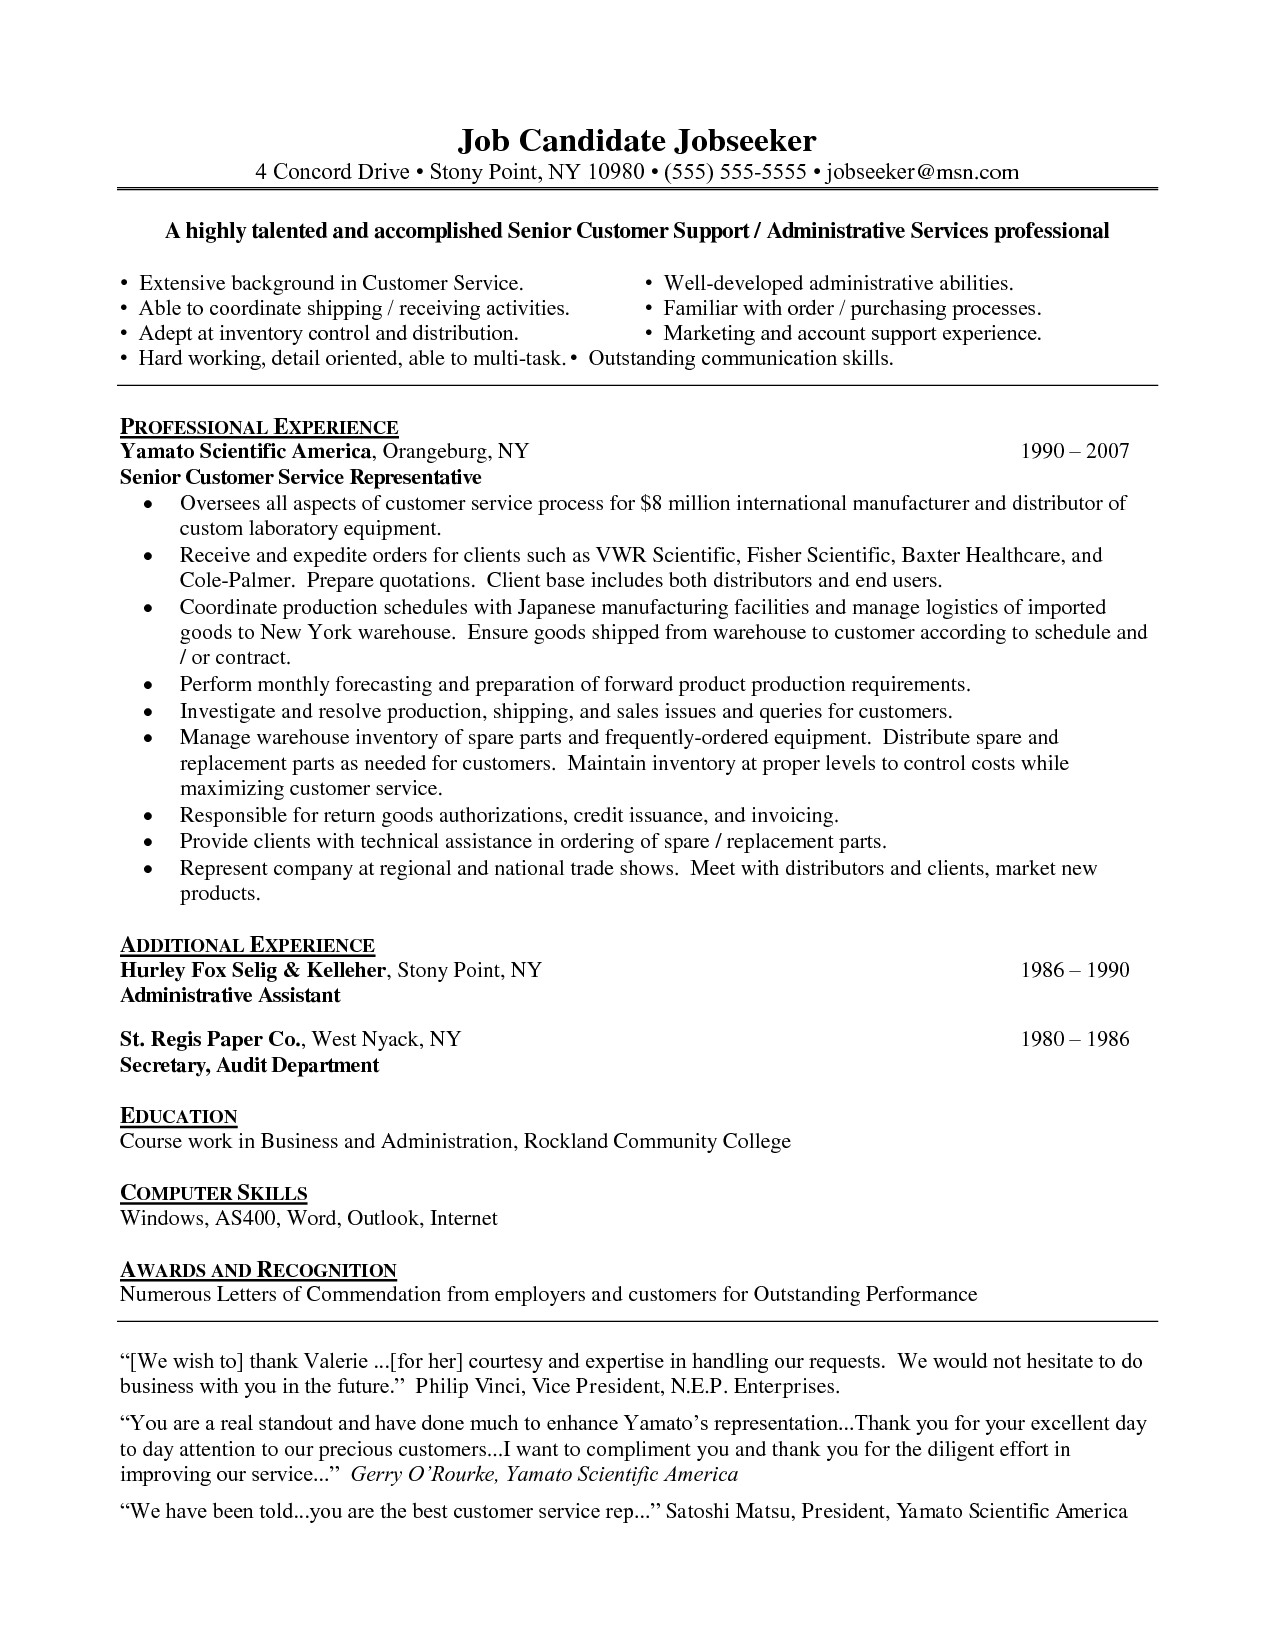 Professional Summary Resume Unique Resume Actuary Objective Bookkeeper Professional Entry Level 2018